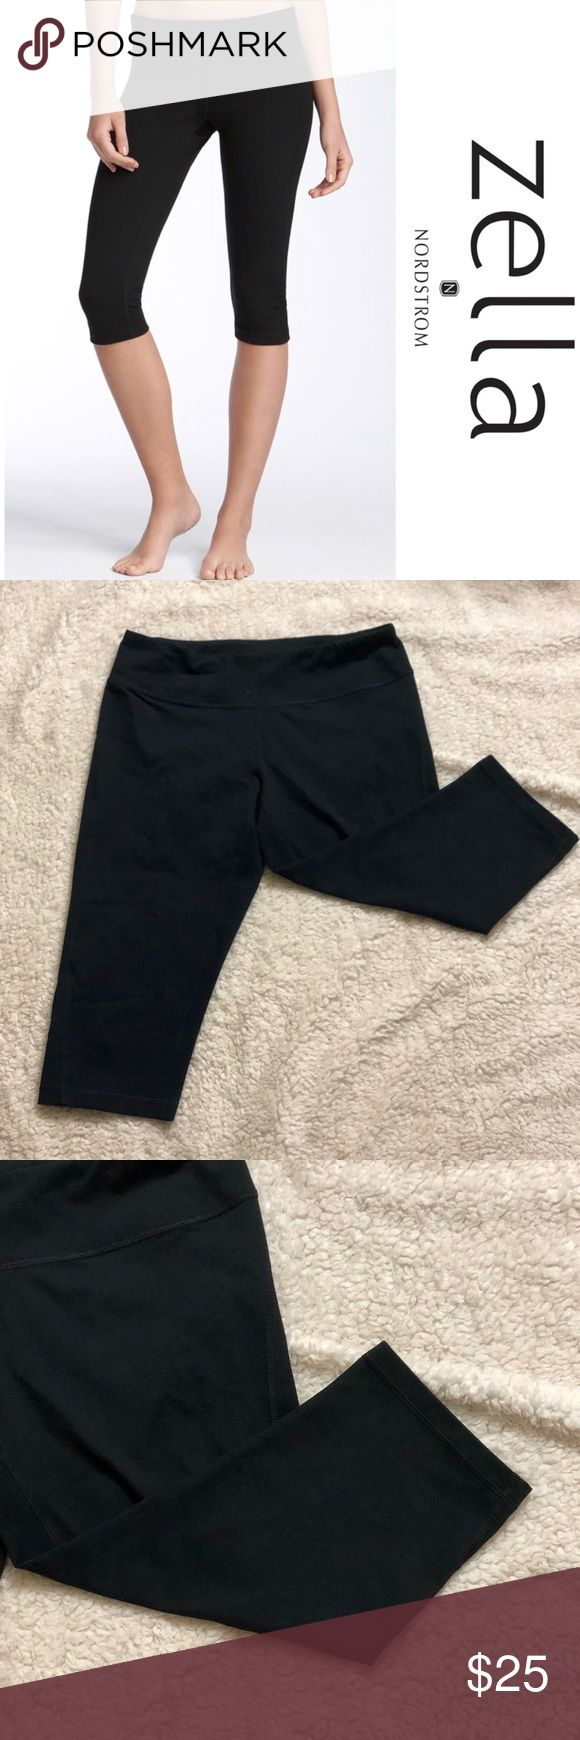 "Zella Live In Capri Pants -M Lean capri leggings, ideal for working out or wearing out, are cut from a stretchy moisture-wicking knit and are sewn with flatlock seaming for a comfortable, chafe-free fit.  Condition: pre-loved, like new  17"" inseam; 12"" leg opening; 8"" front rise; 13"" back rise (size Medium). Hidden waistband pocket stashes cash or a key. Moisture-wicking fabric dries quickly to keep you cool and comfortable. Zeltek Ultimate Stretch fabric. 87% polyester, 13% spandex. Machine…"